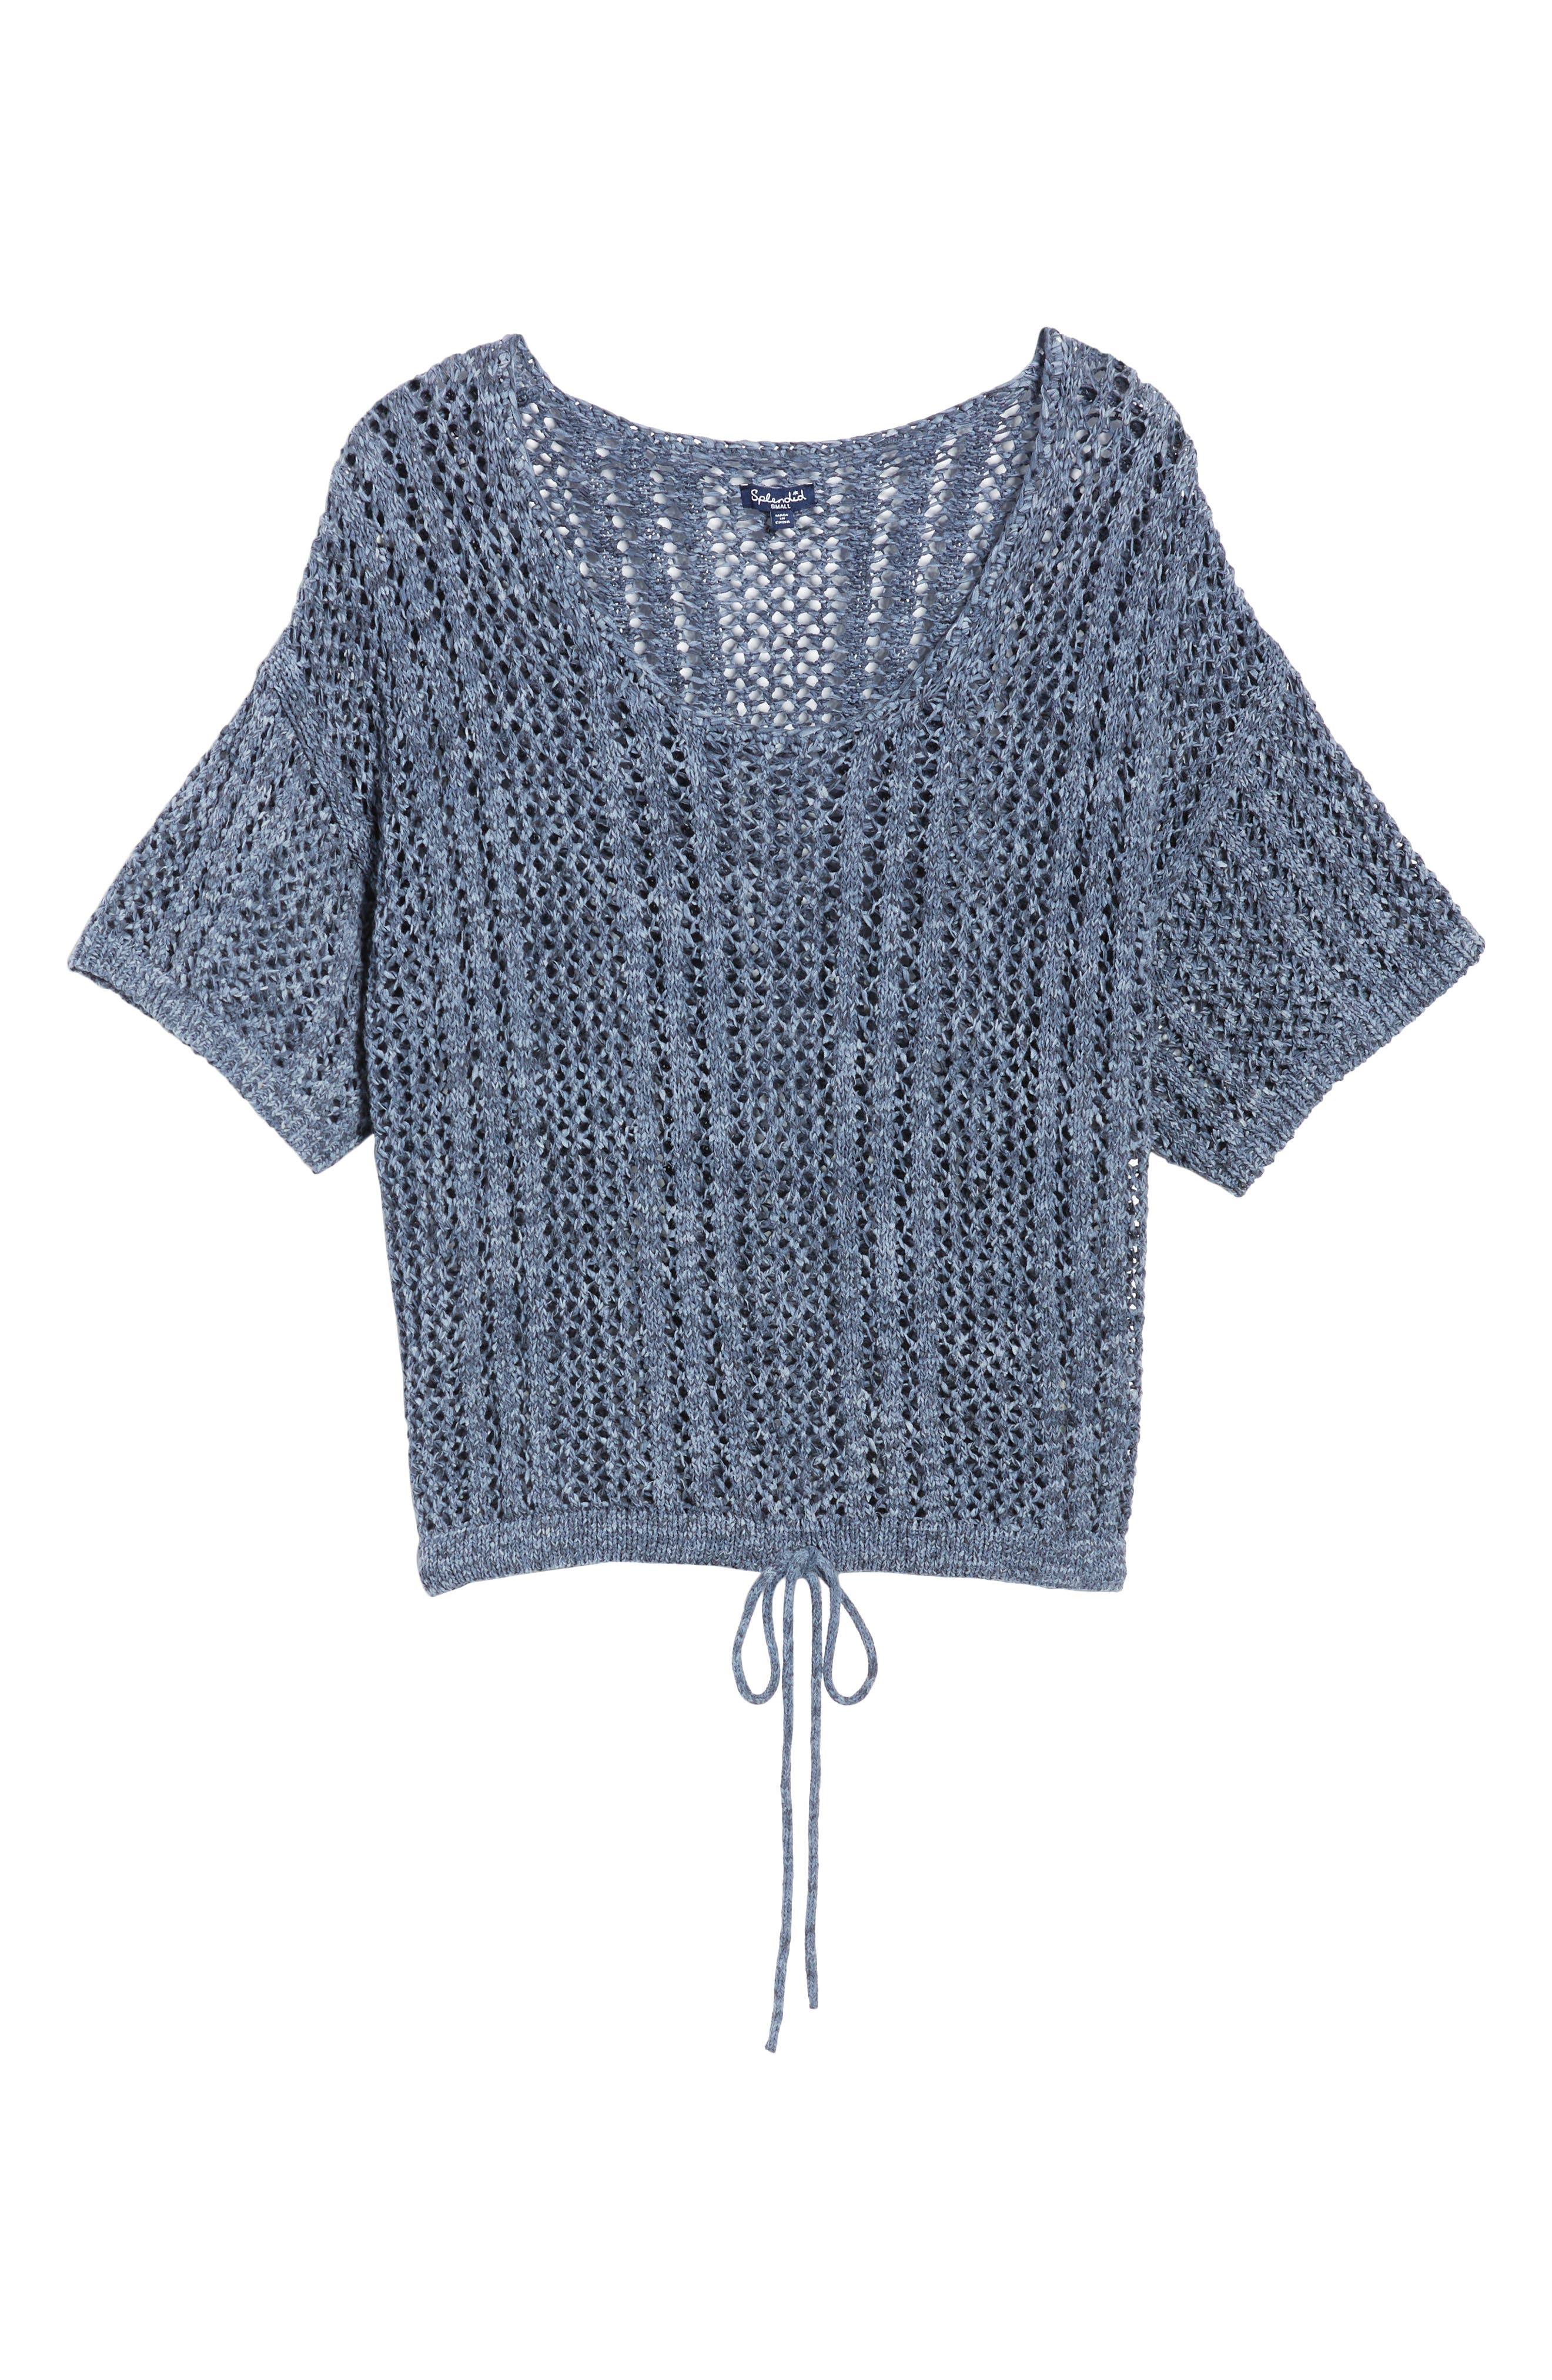 Knox Crochet Sweater,                             Alternate thumbnail 6, color,                             Navy